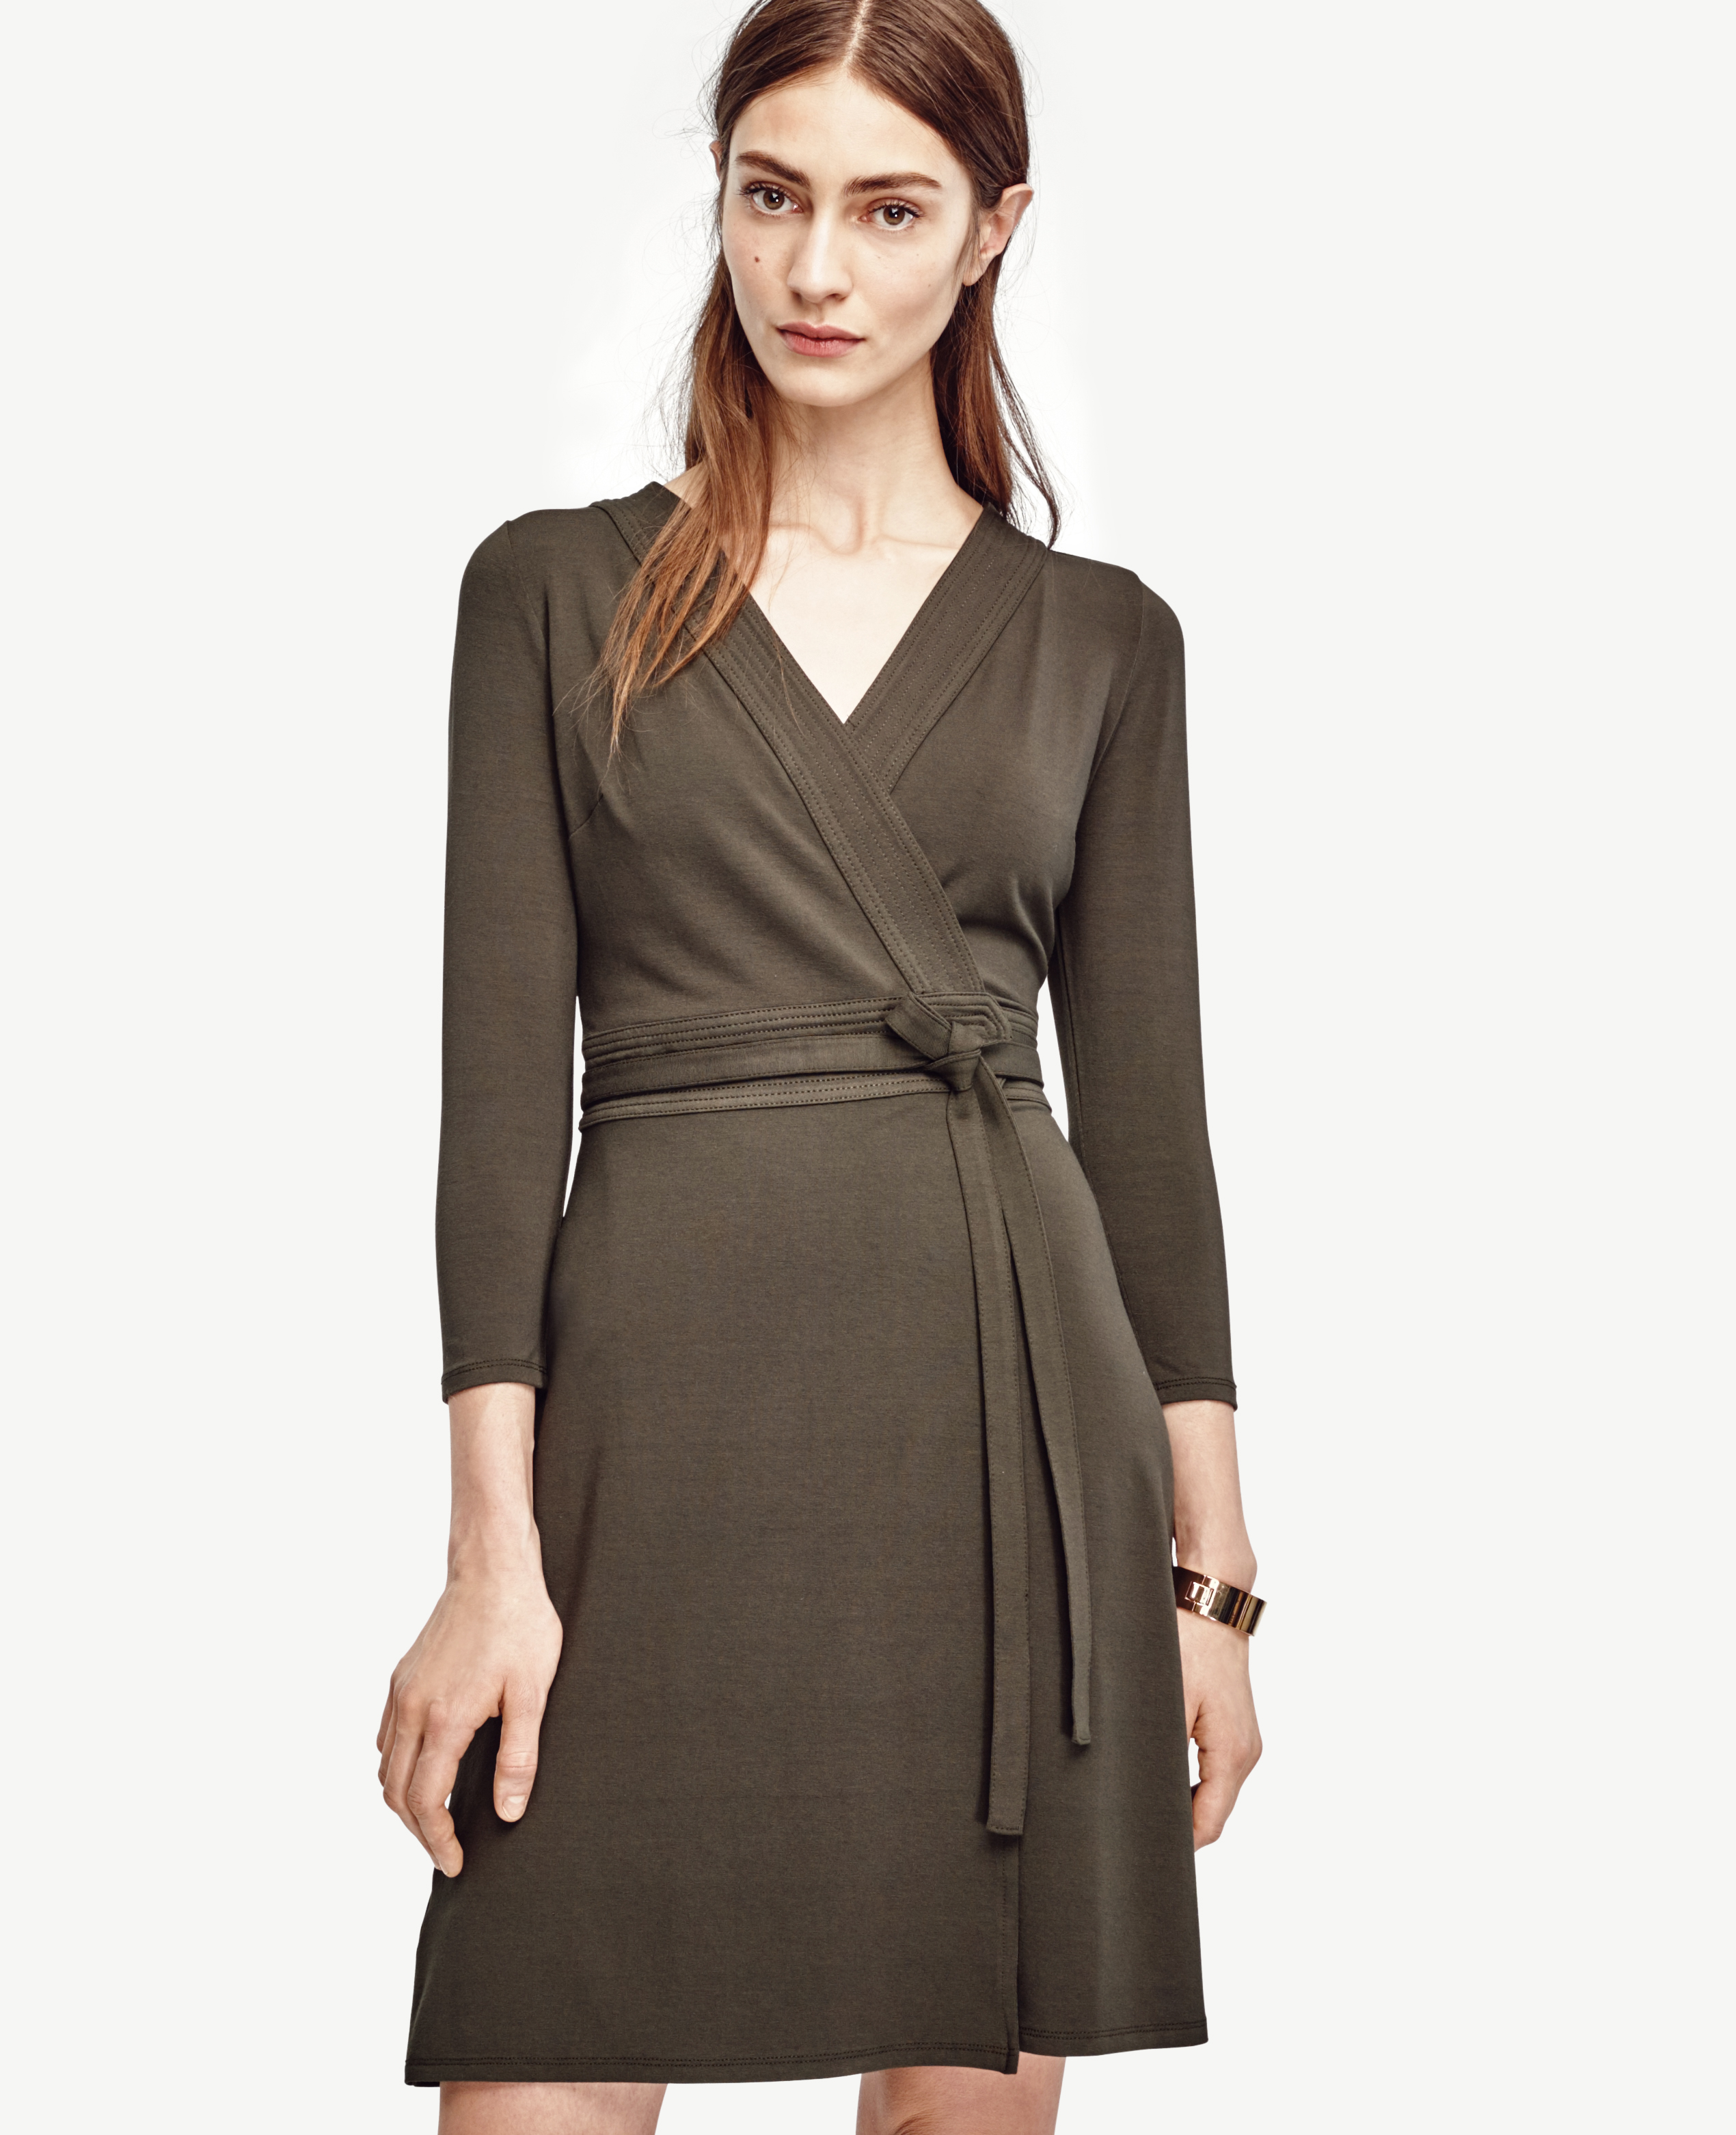 Ann taylor Petite 3/4 Sleeve Wrap Dress in Green | Lyst